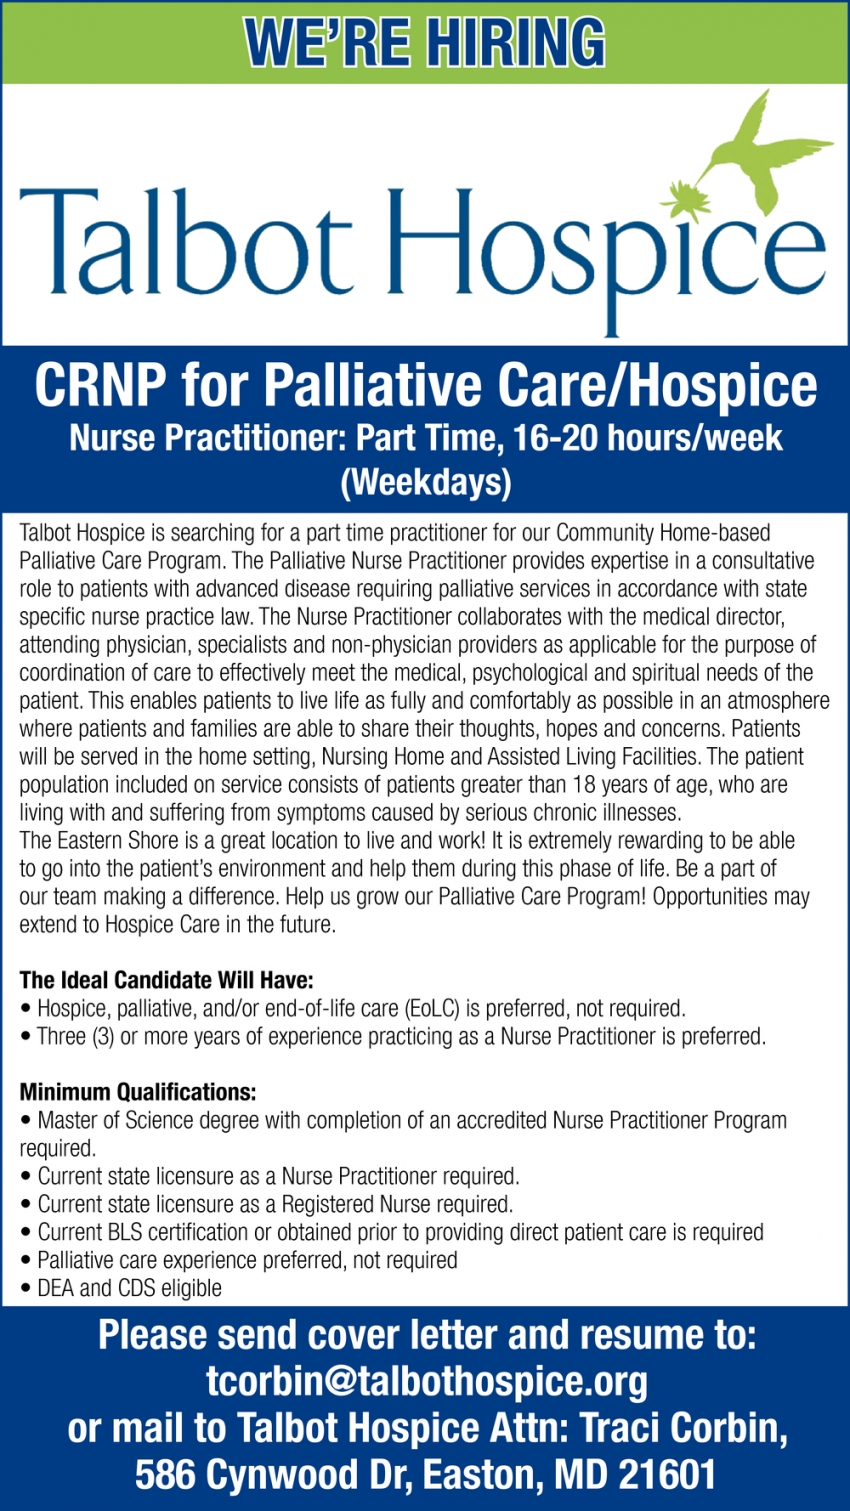 CRNP For Palliative Care/Hospice